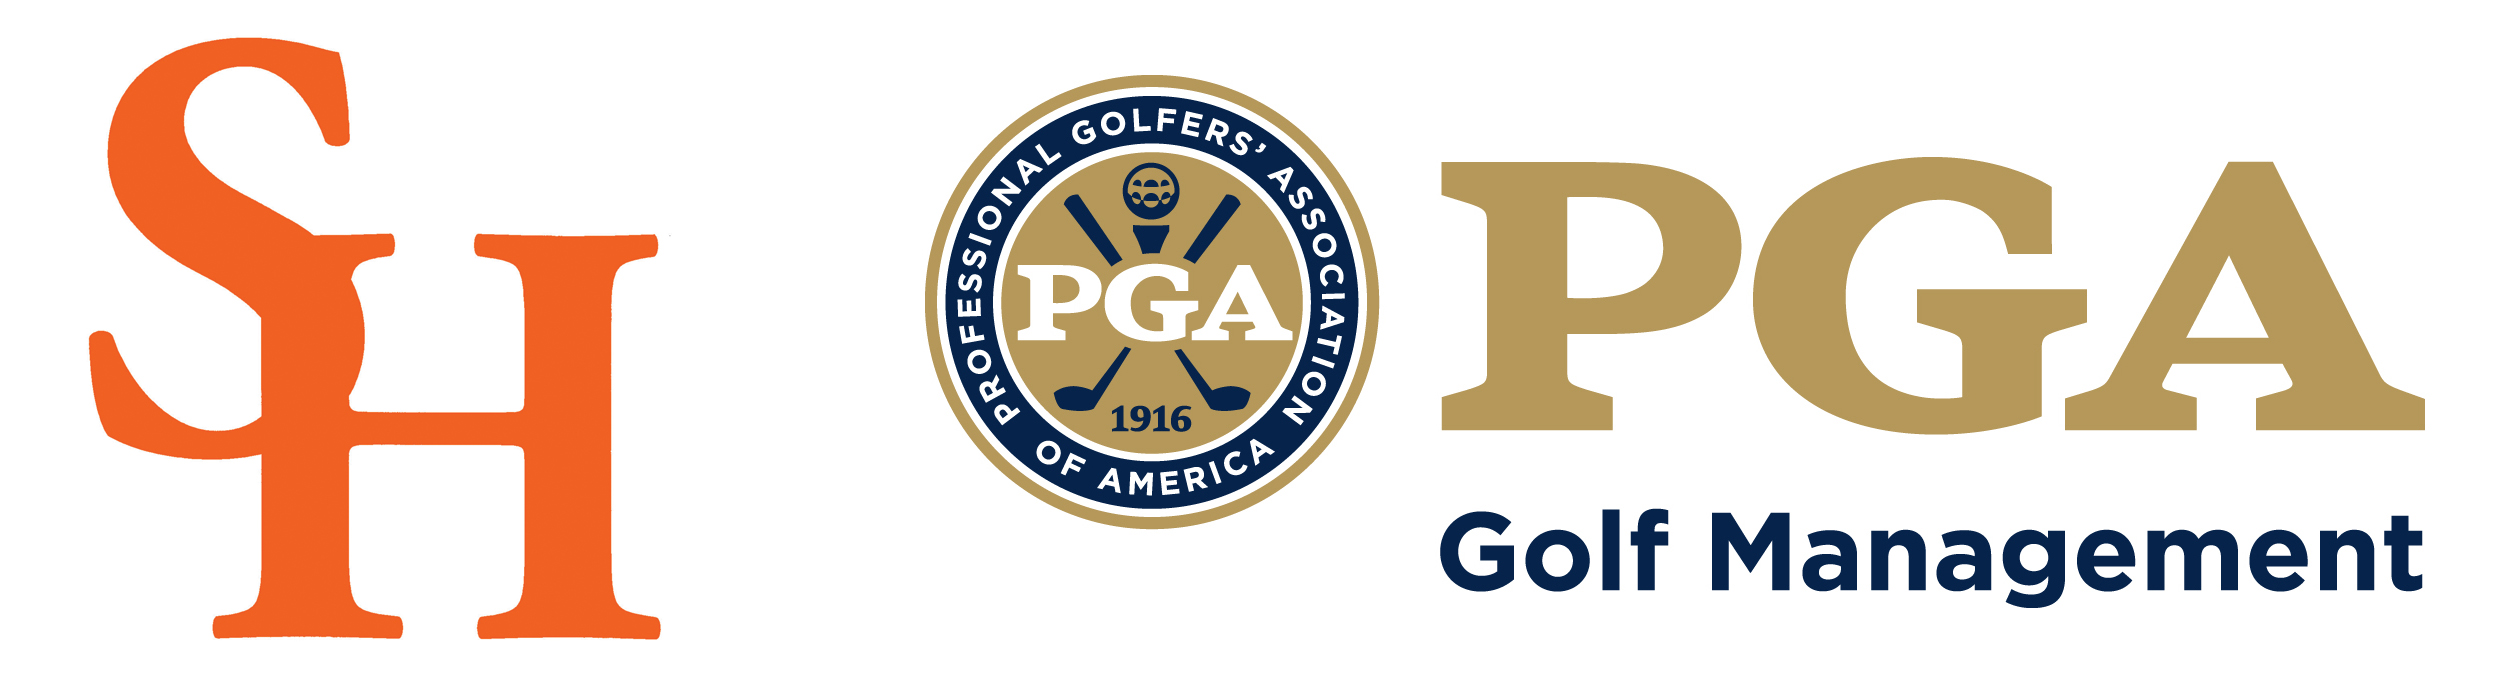 Sh pga golf management